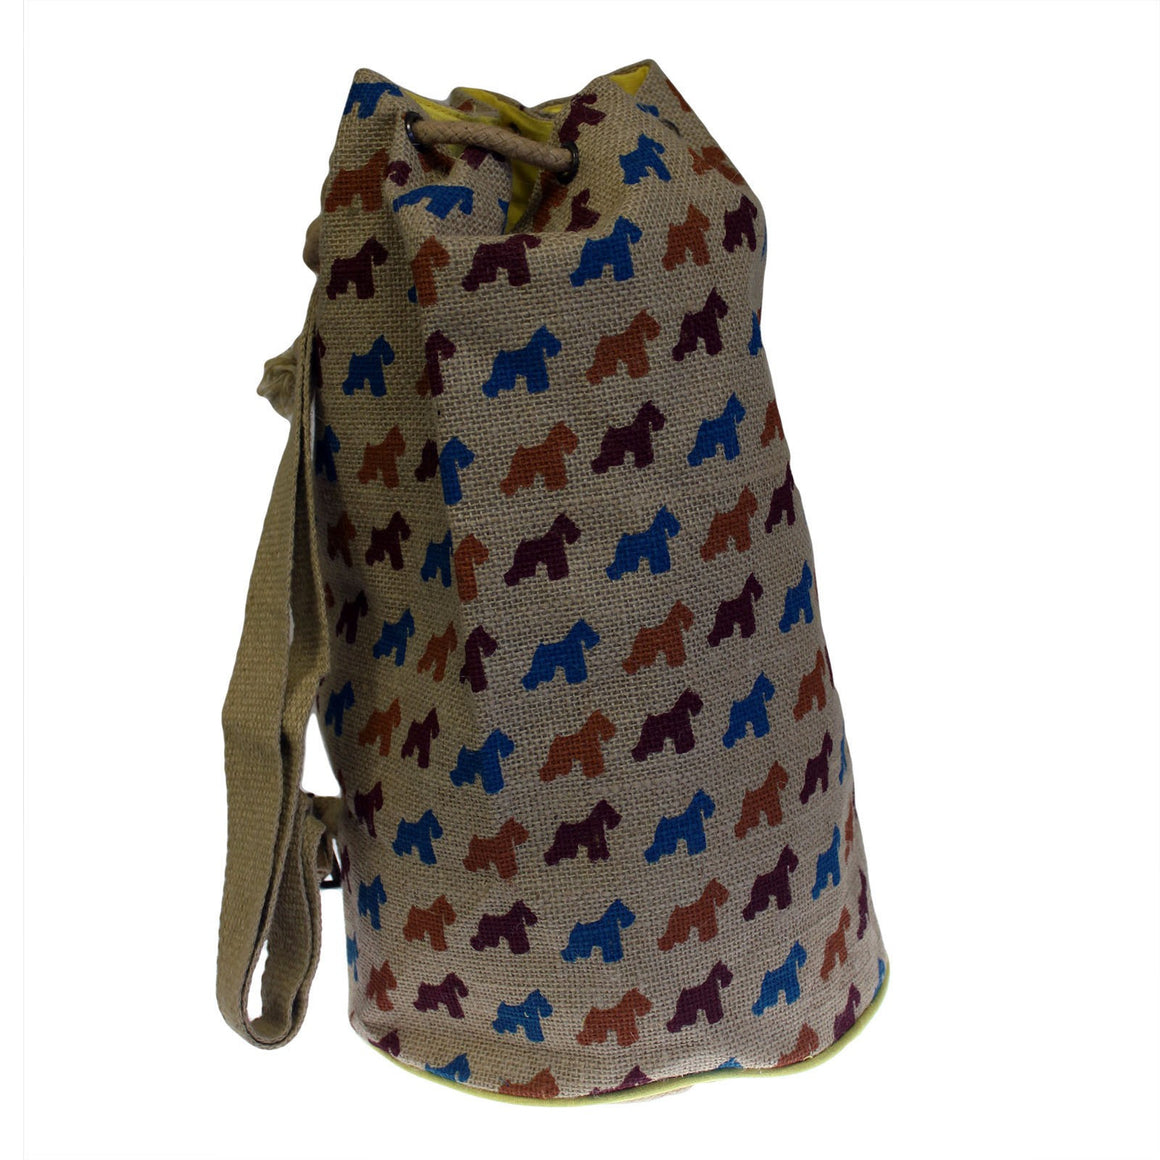 Backpacks, Bags, Hipster Duffle Bags, Jute Bags, Jute Duffle Bag, Outdoors, Scotty Dog, Travel